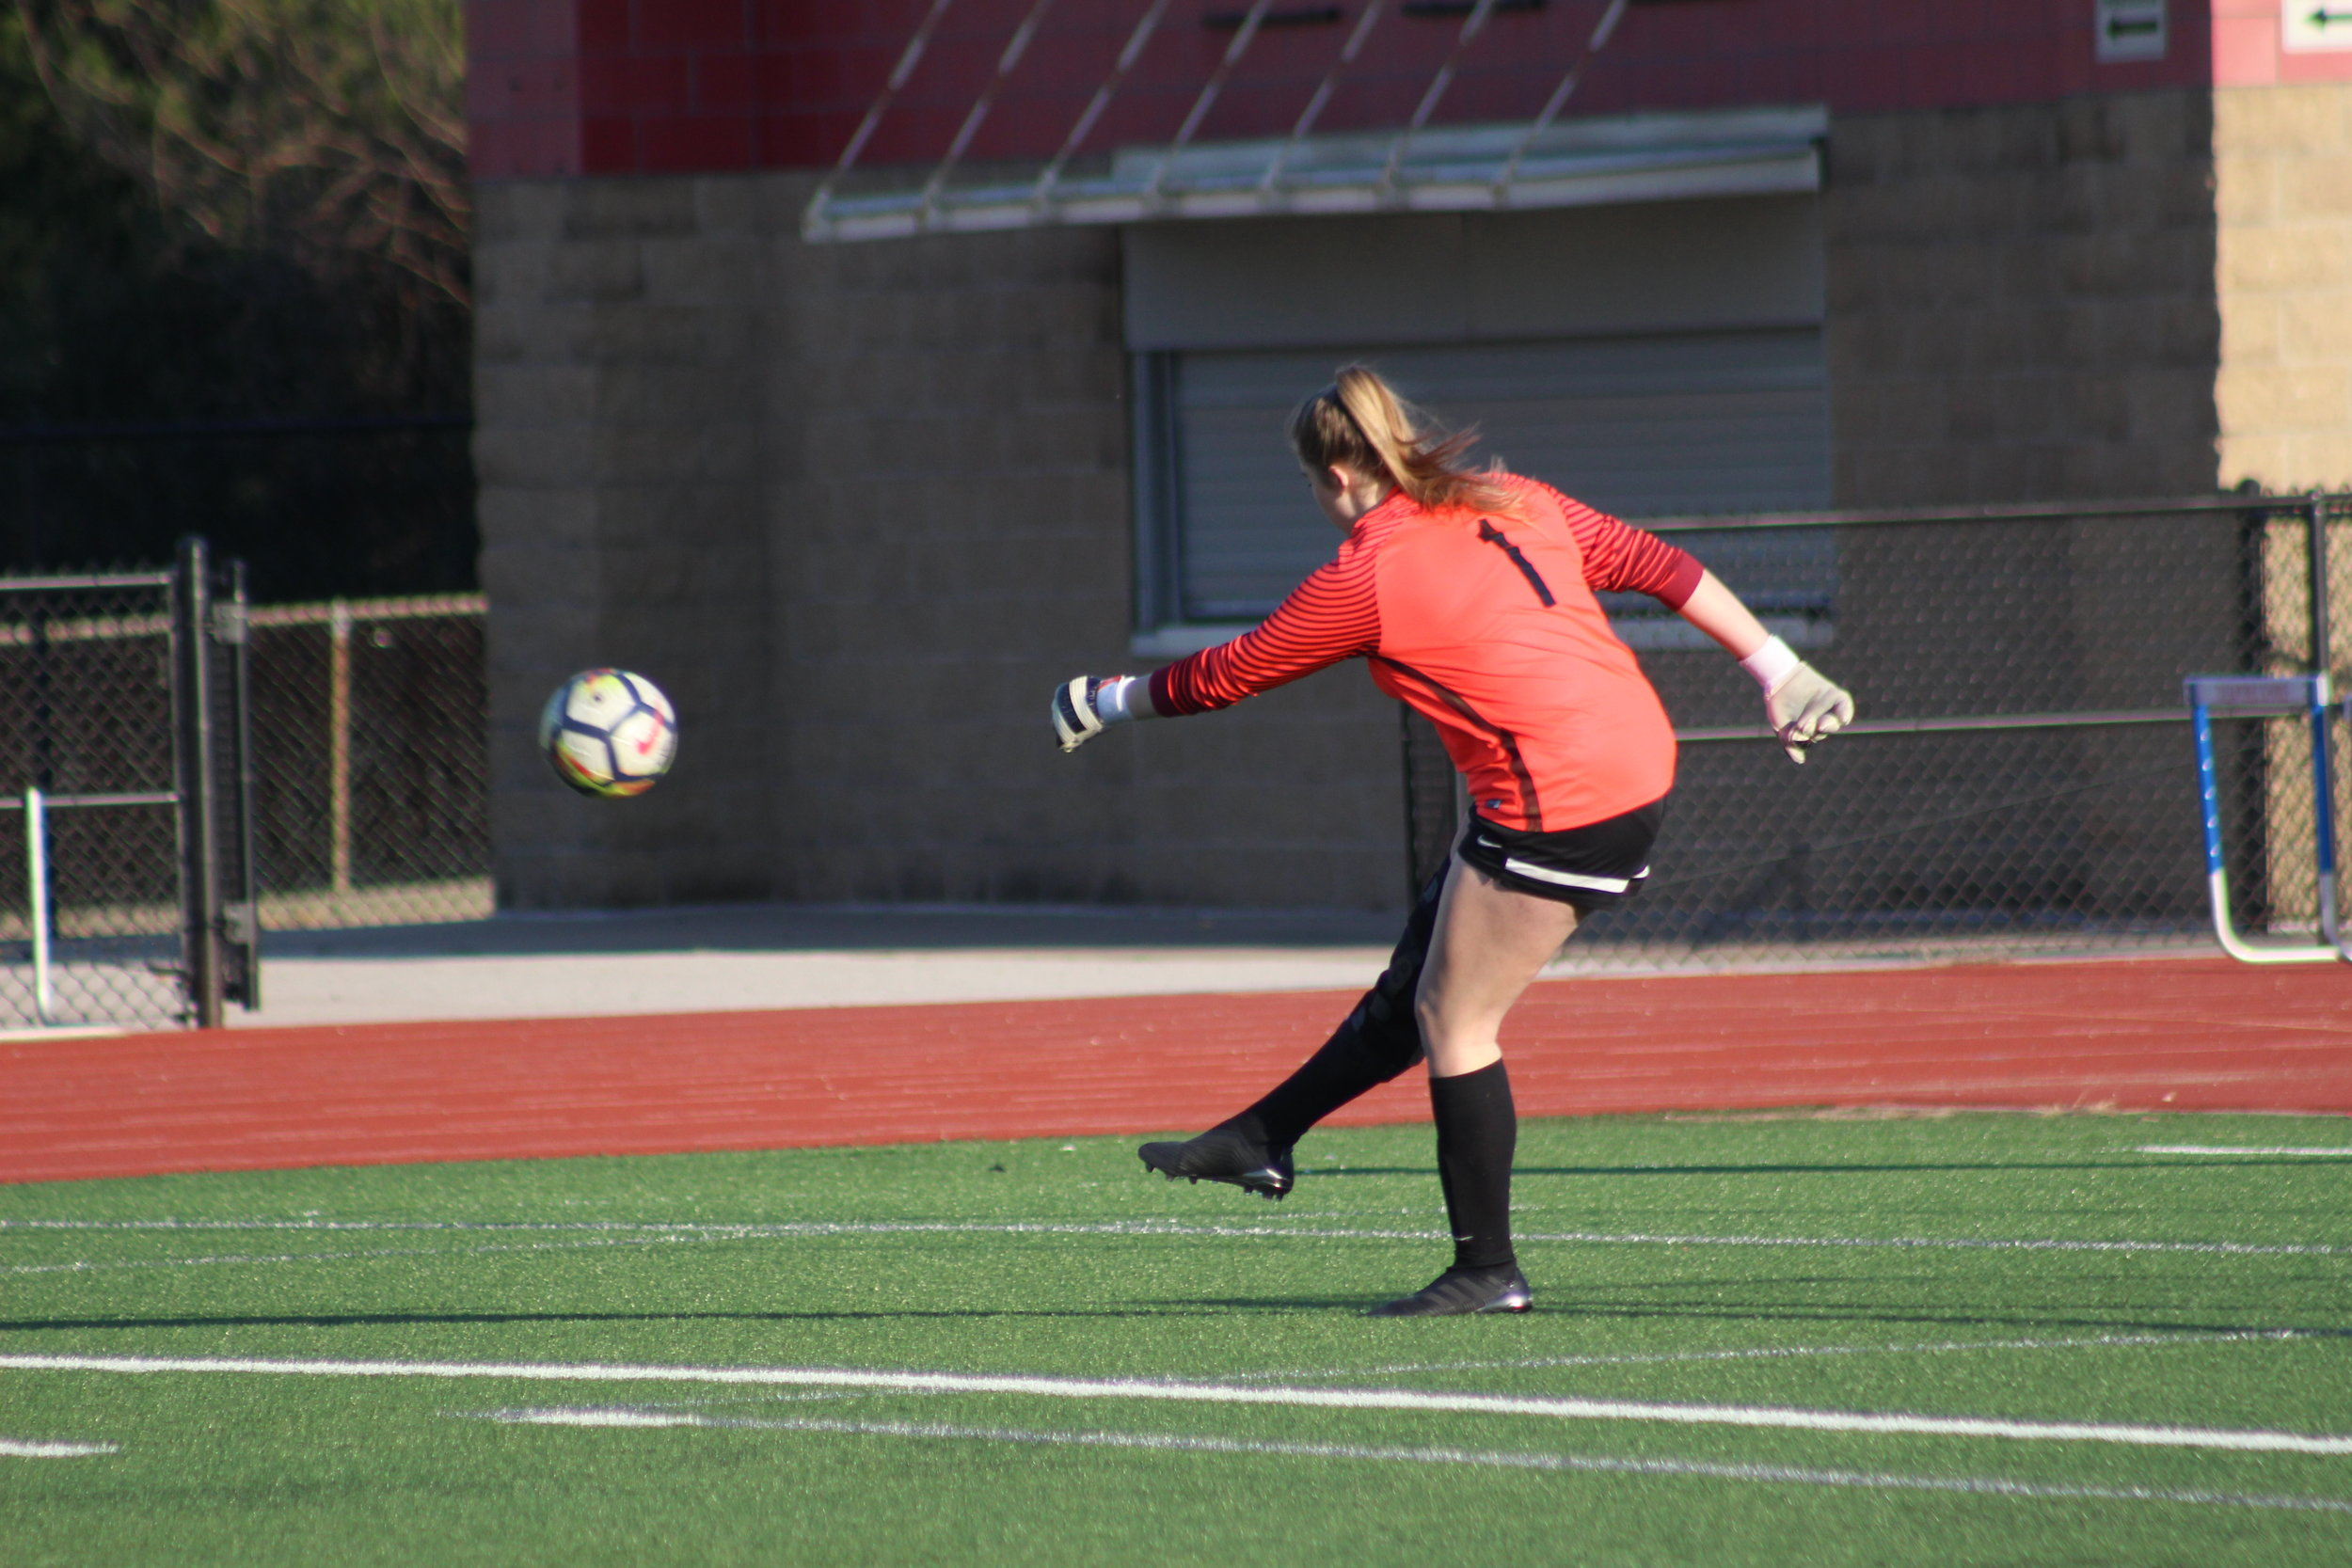 Senior keeper Abigail Banks saved a pair of games Saturday, winning them in overtime shootouts.